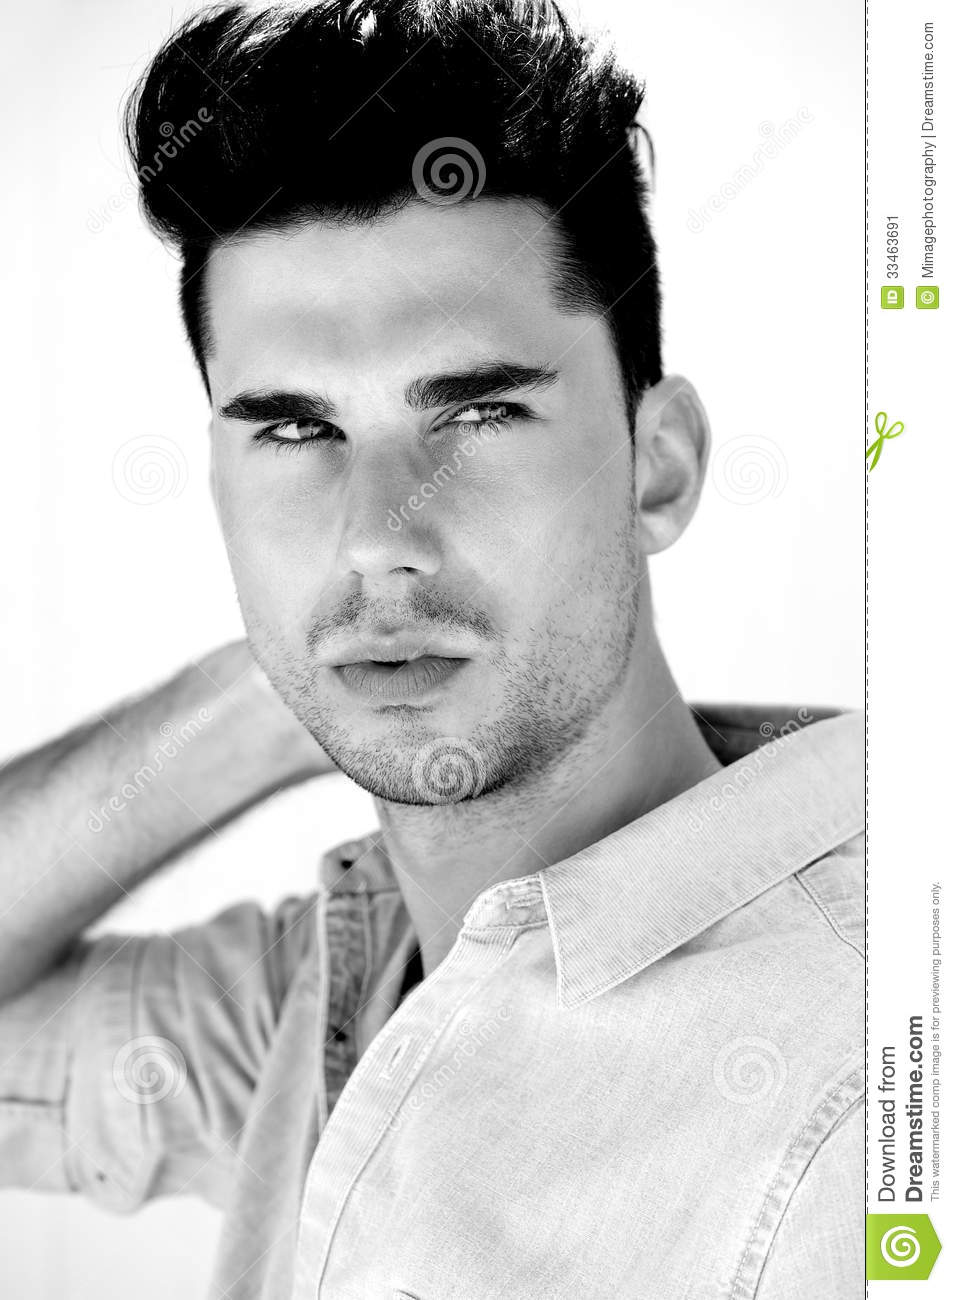 Awe Inspiring Black And White Portrait Of An Attractive Male Fashion Model Stock Hairstyles For Women Draintrainus